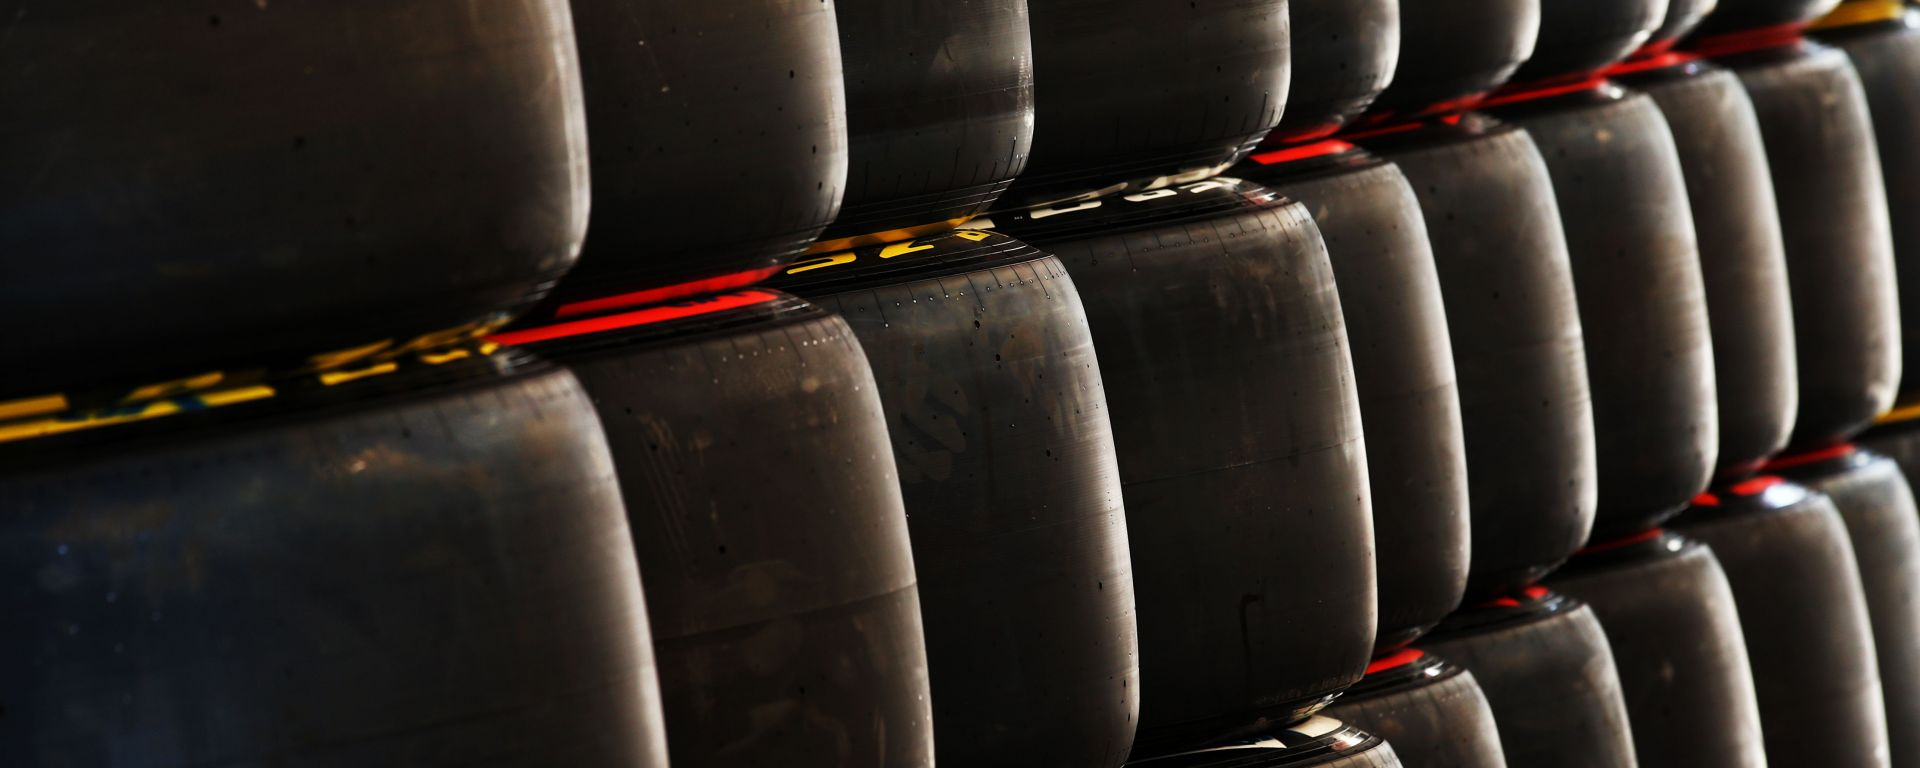 F1, gomme Pirelli impilate